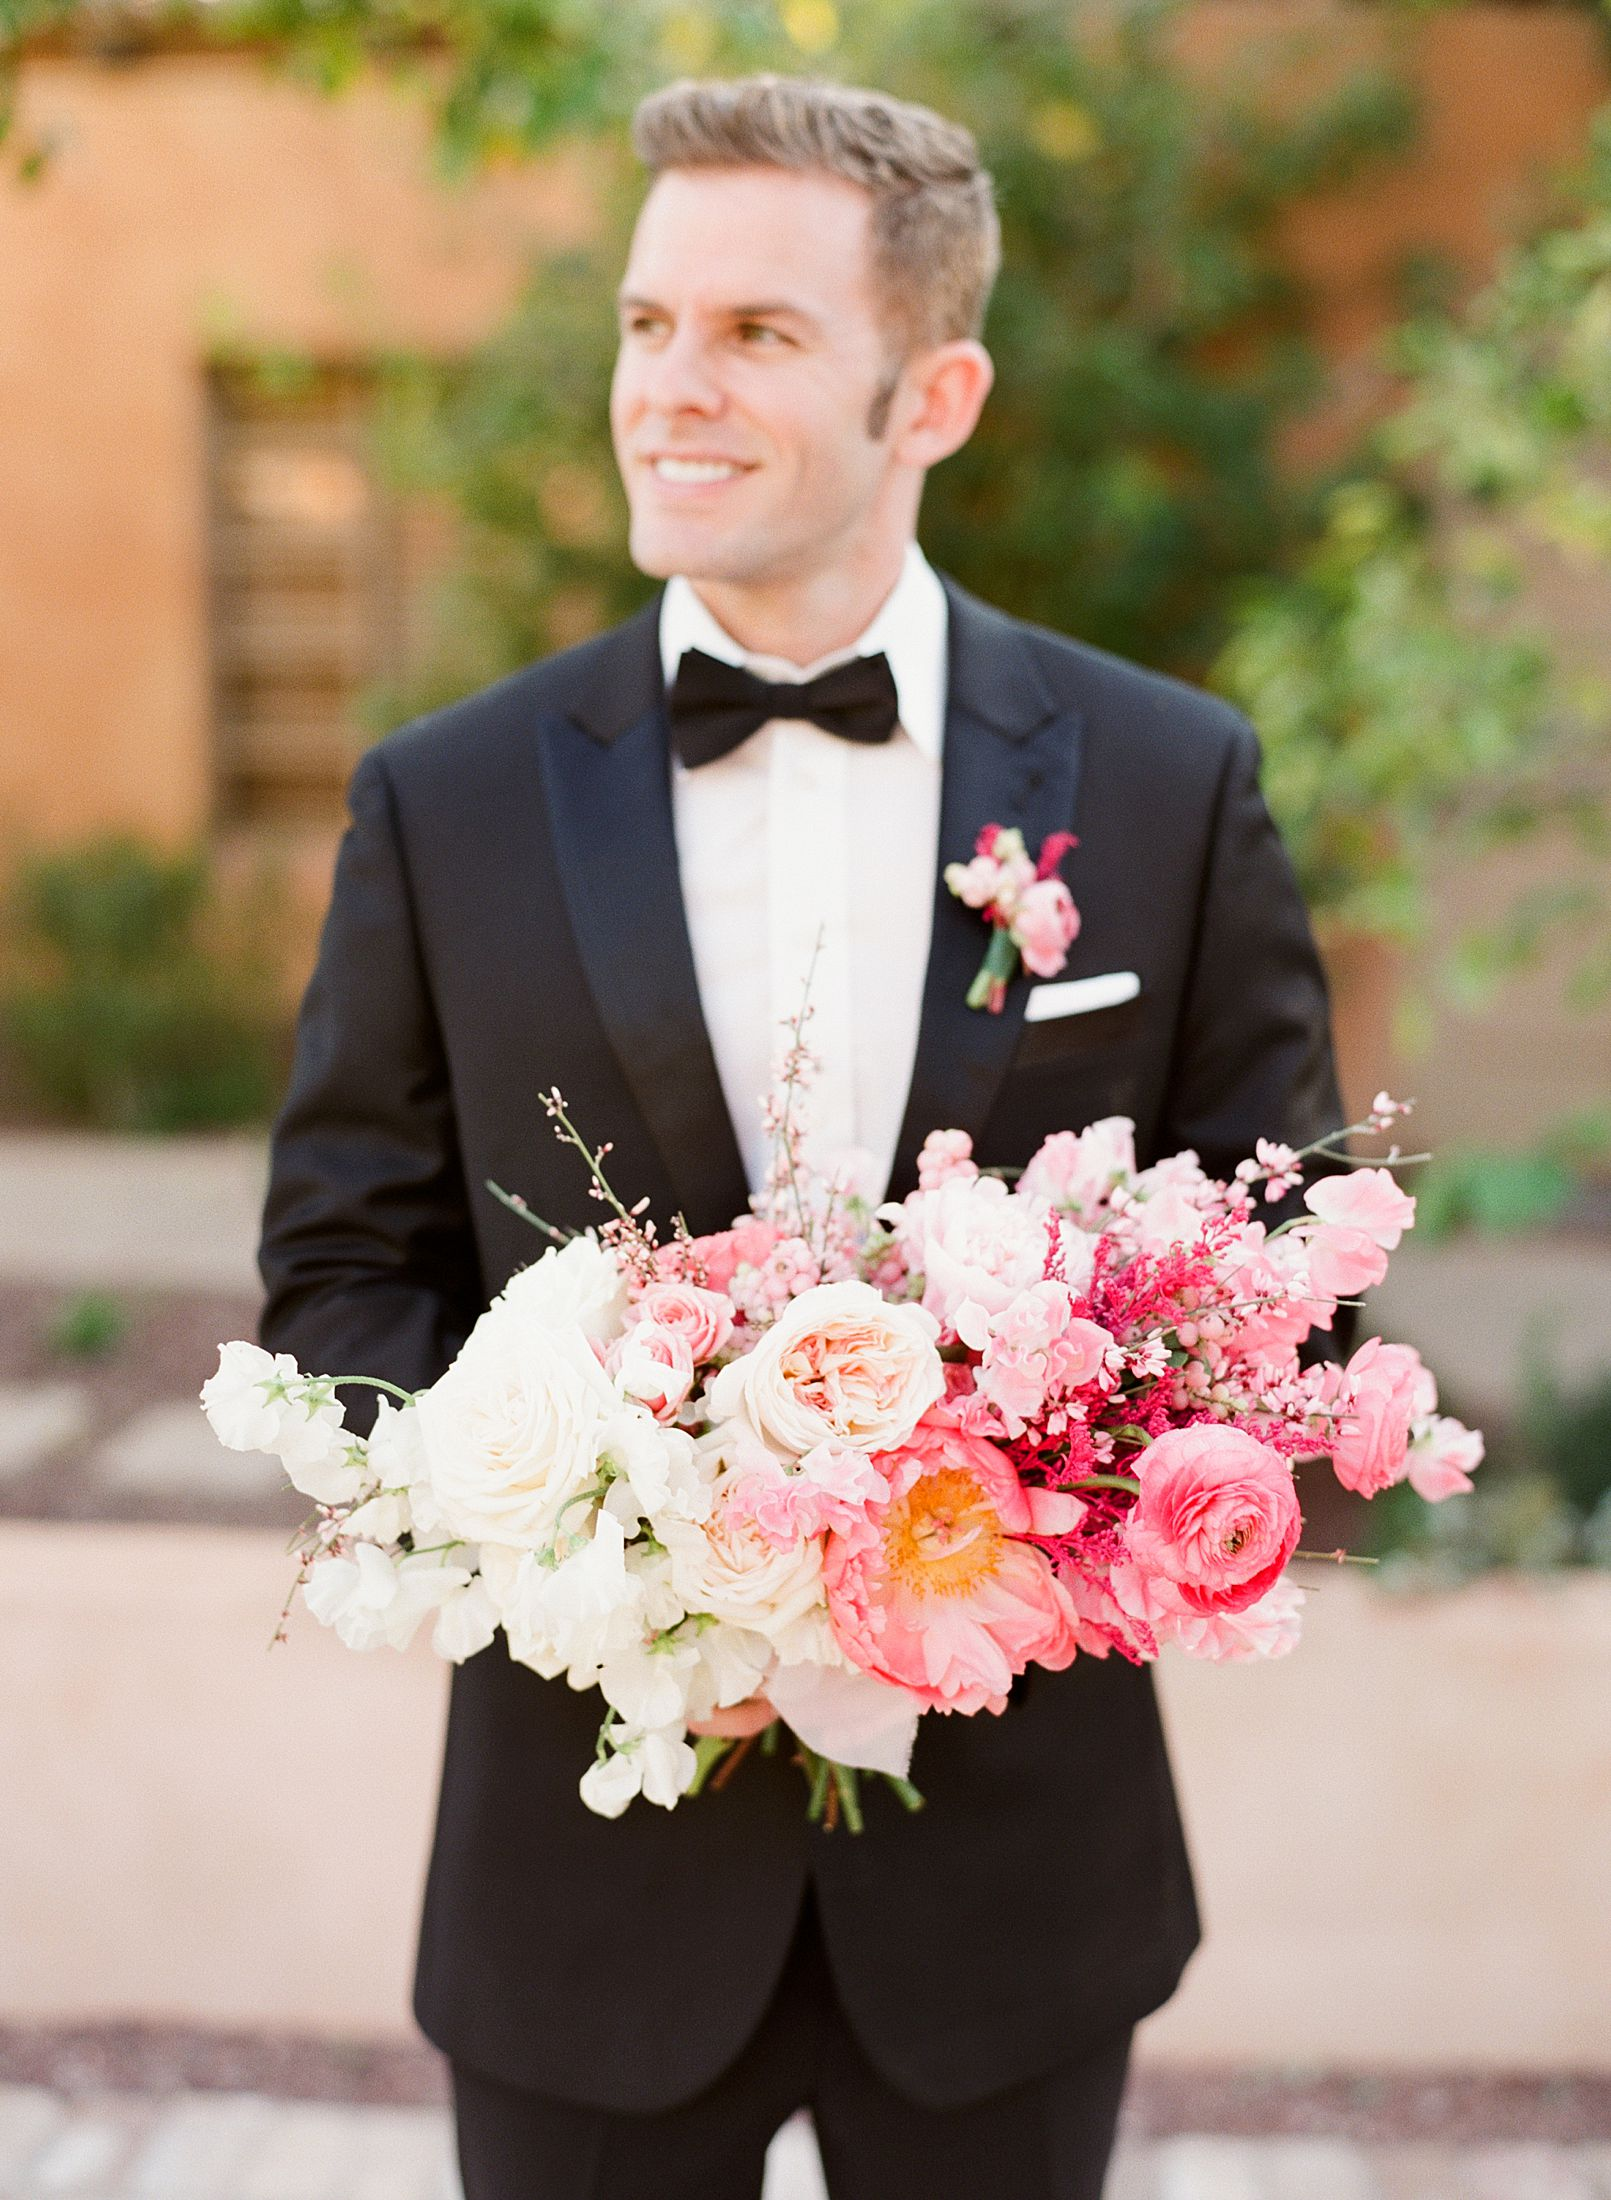 Pink Ombre Wedding Inspiration on Style Me Pretty - Royal Palms Wedding - Scottsdale Wedding - Ashley Baumgartner - Bloom and Blueprint - Wedding Puppies - Bulldog Puppies_0045.jpg